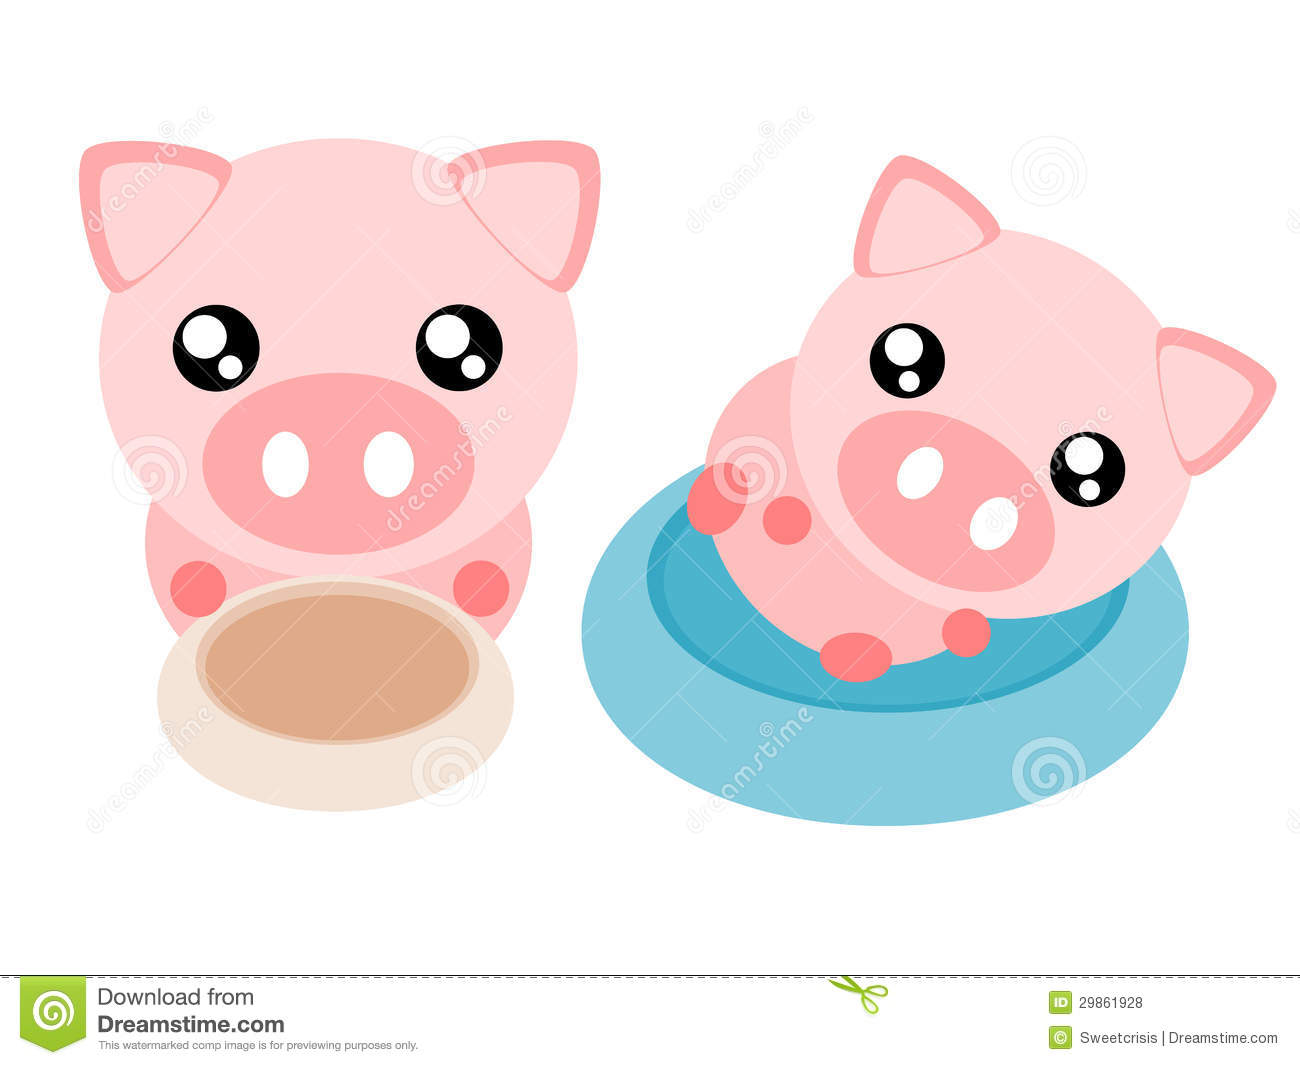 Cartoon Pig Illustration Royalty Free Stock Photos - Image: 29861928